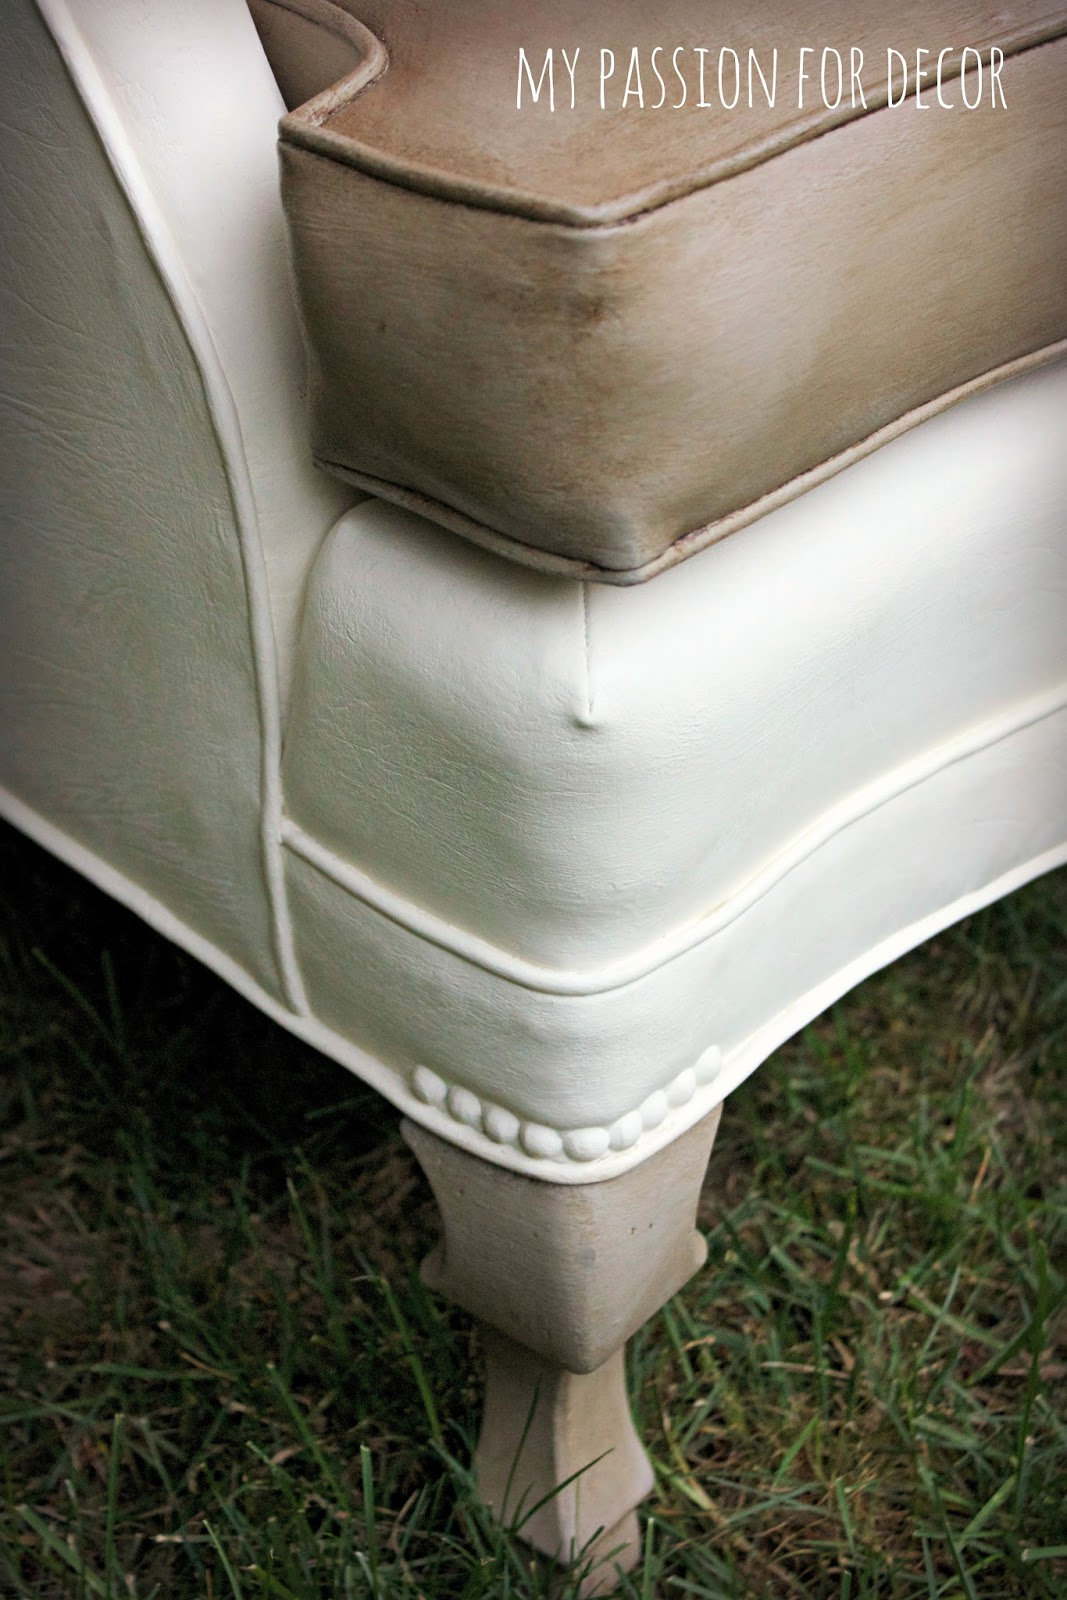 Can I Spray Paint My Leather Sofa Purple Velvet Bed How To Update An Ugly Vinyl Chair Southbury Ct Patch